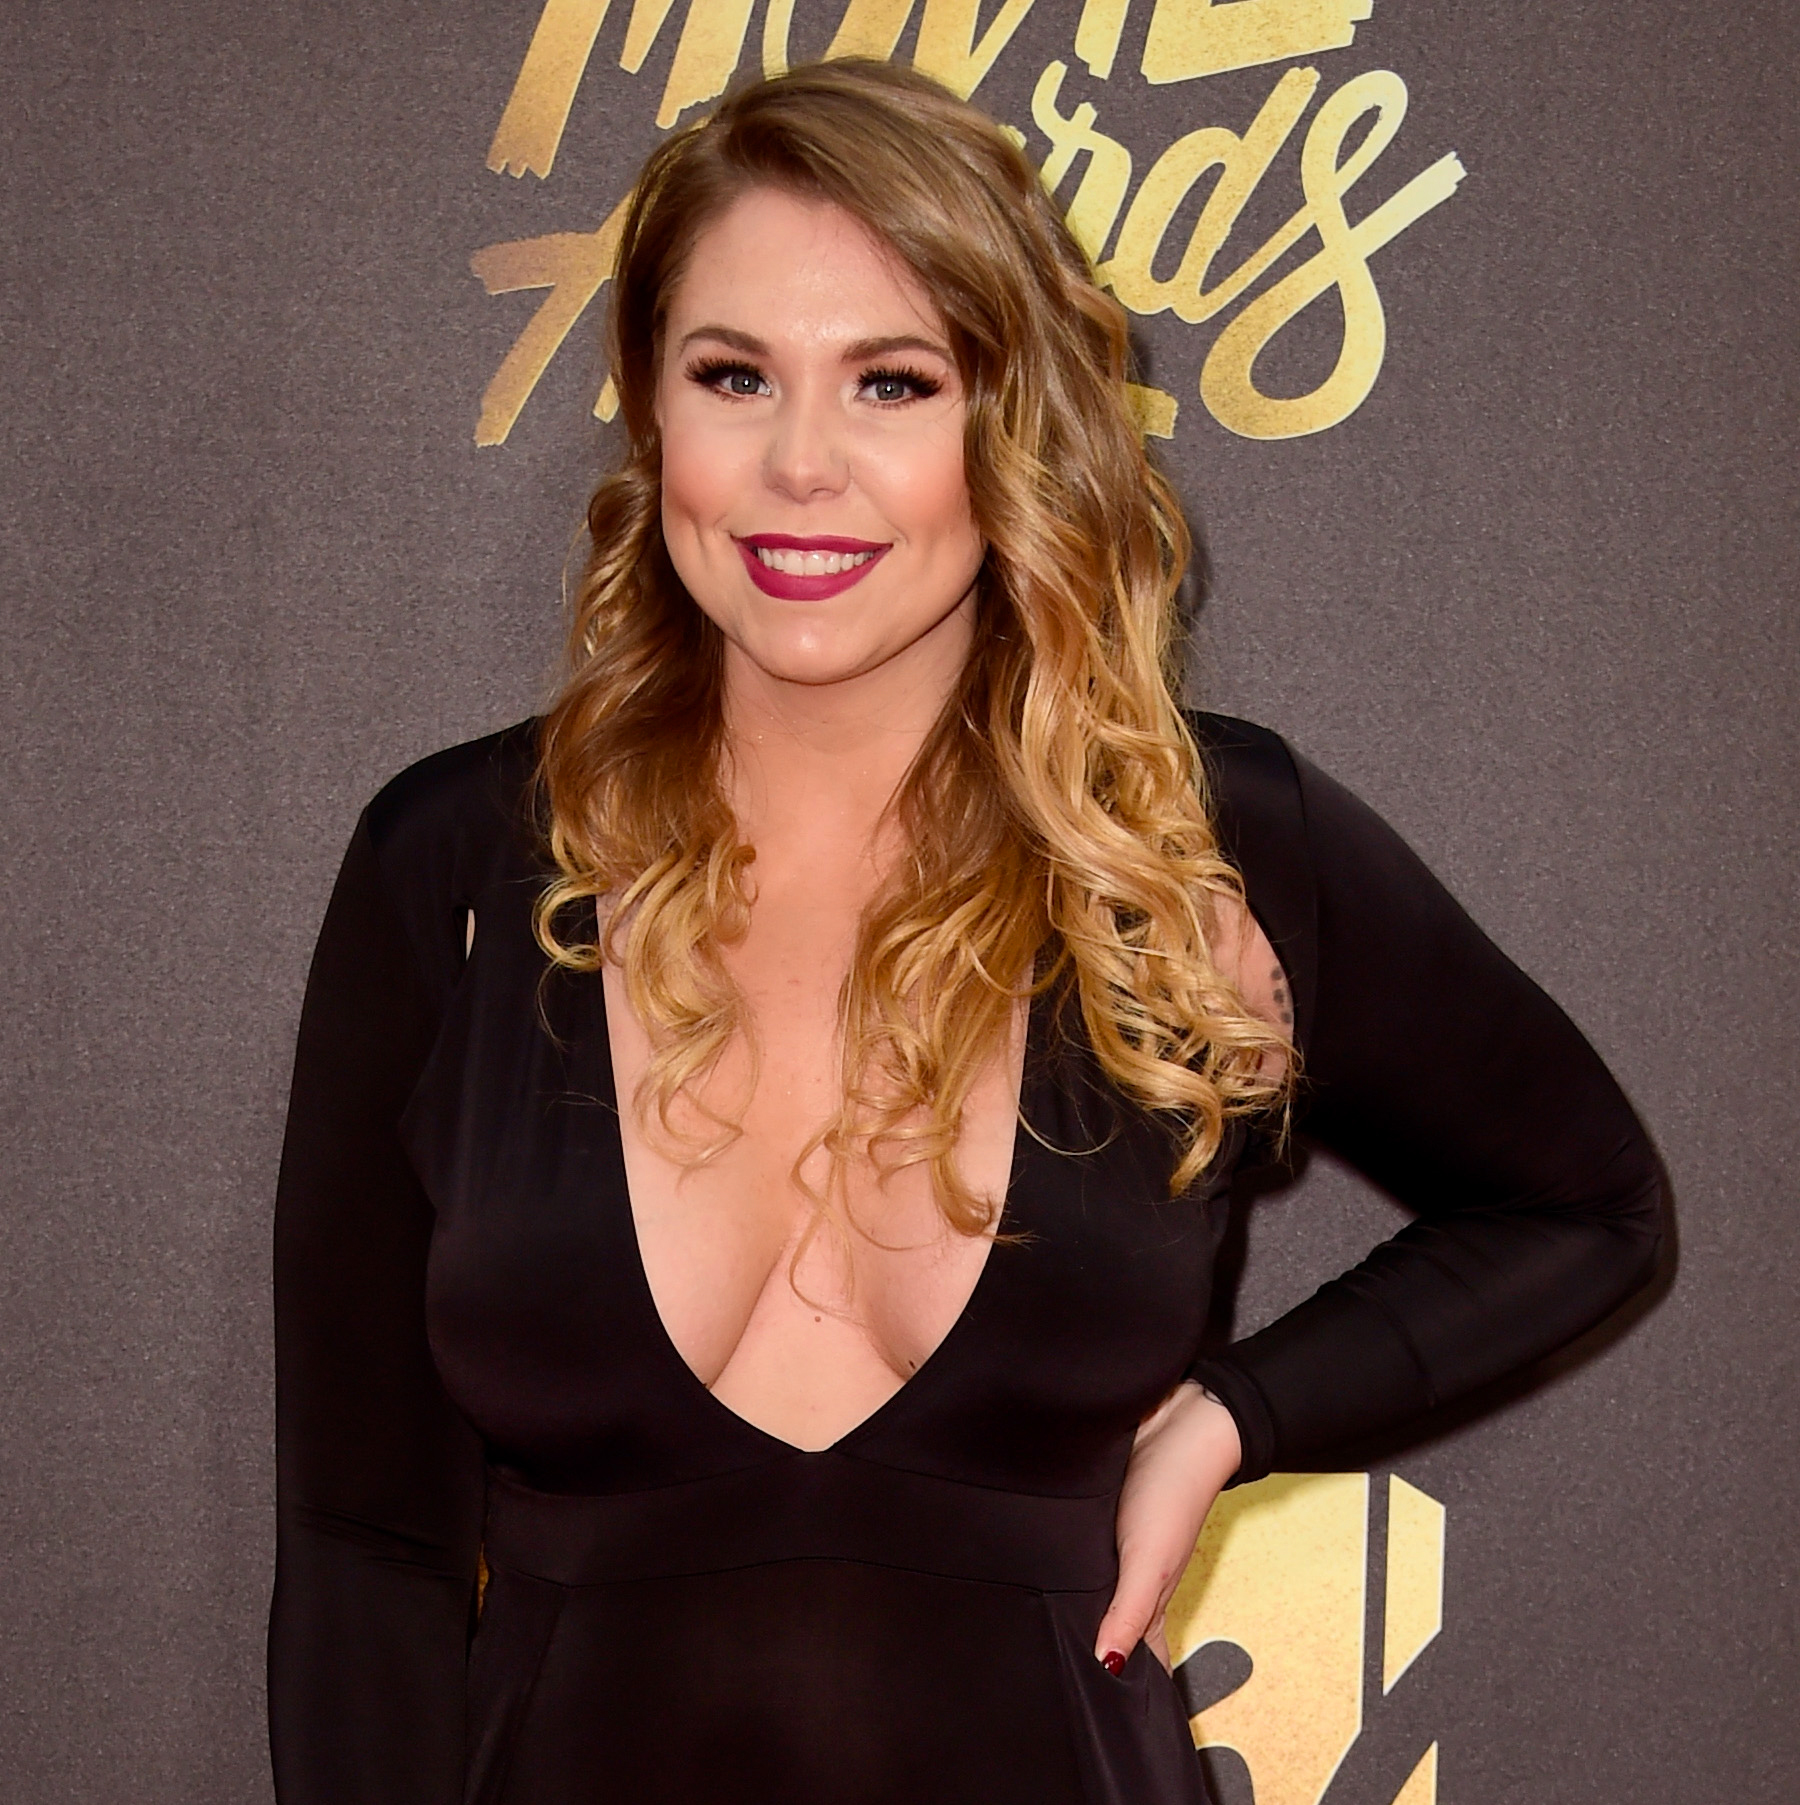 Teen Mom Kailyn Lowry says shes saddened and humiliated